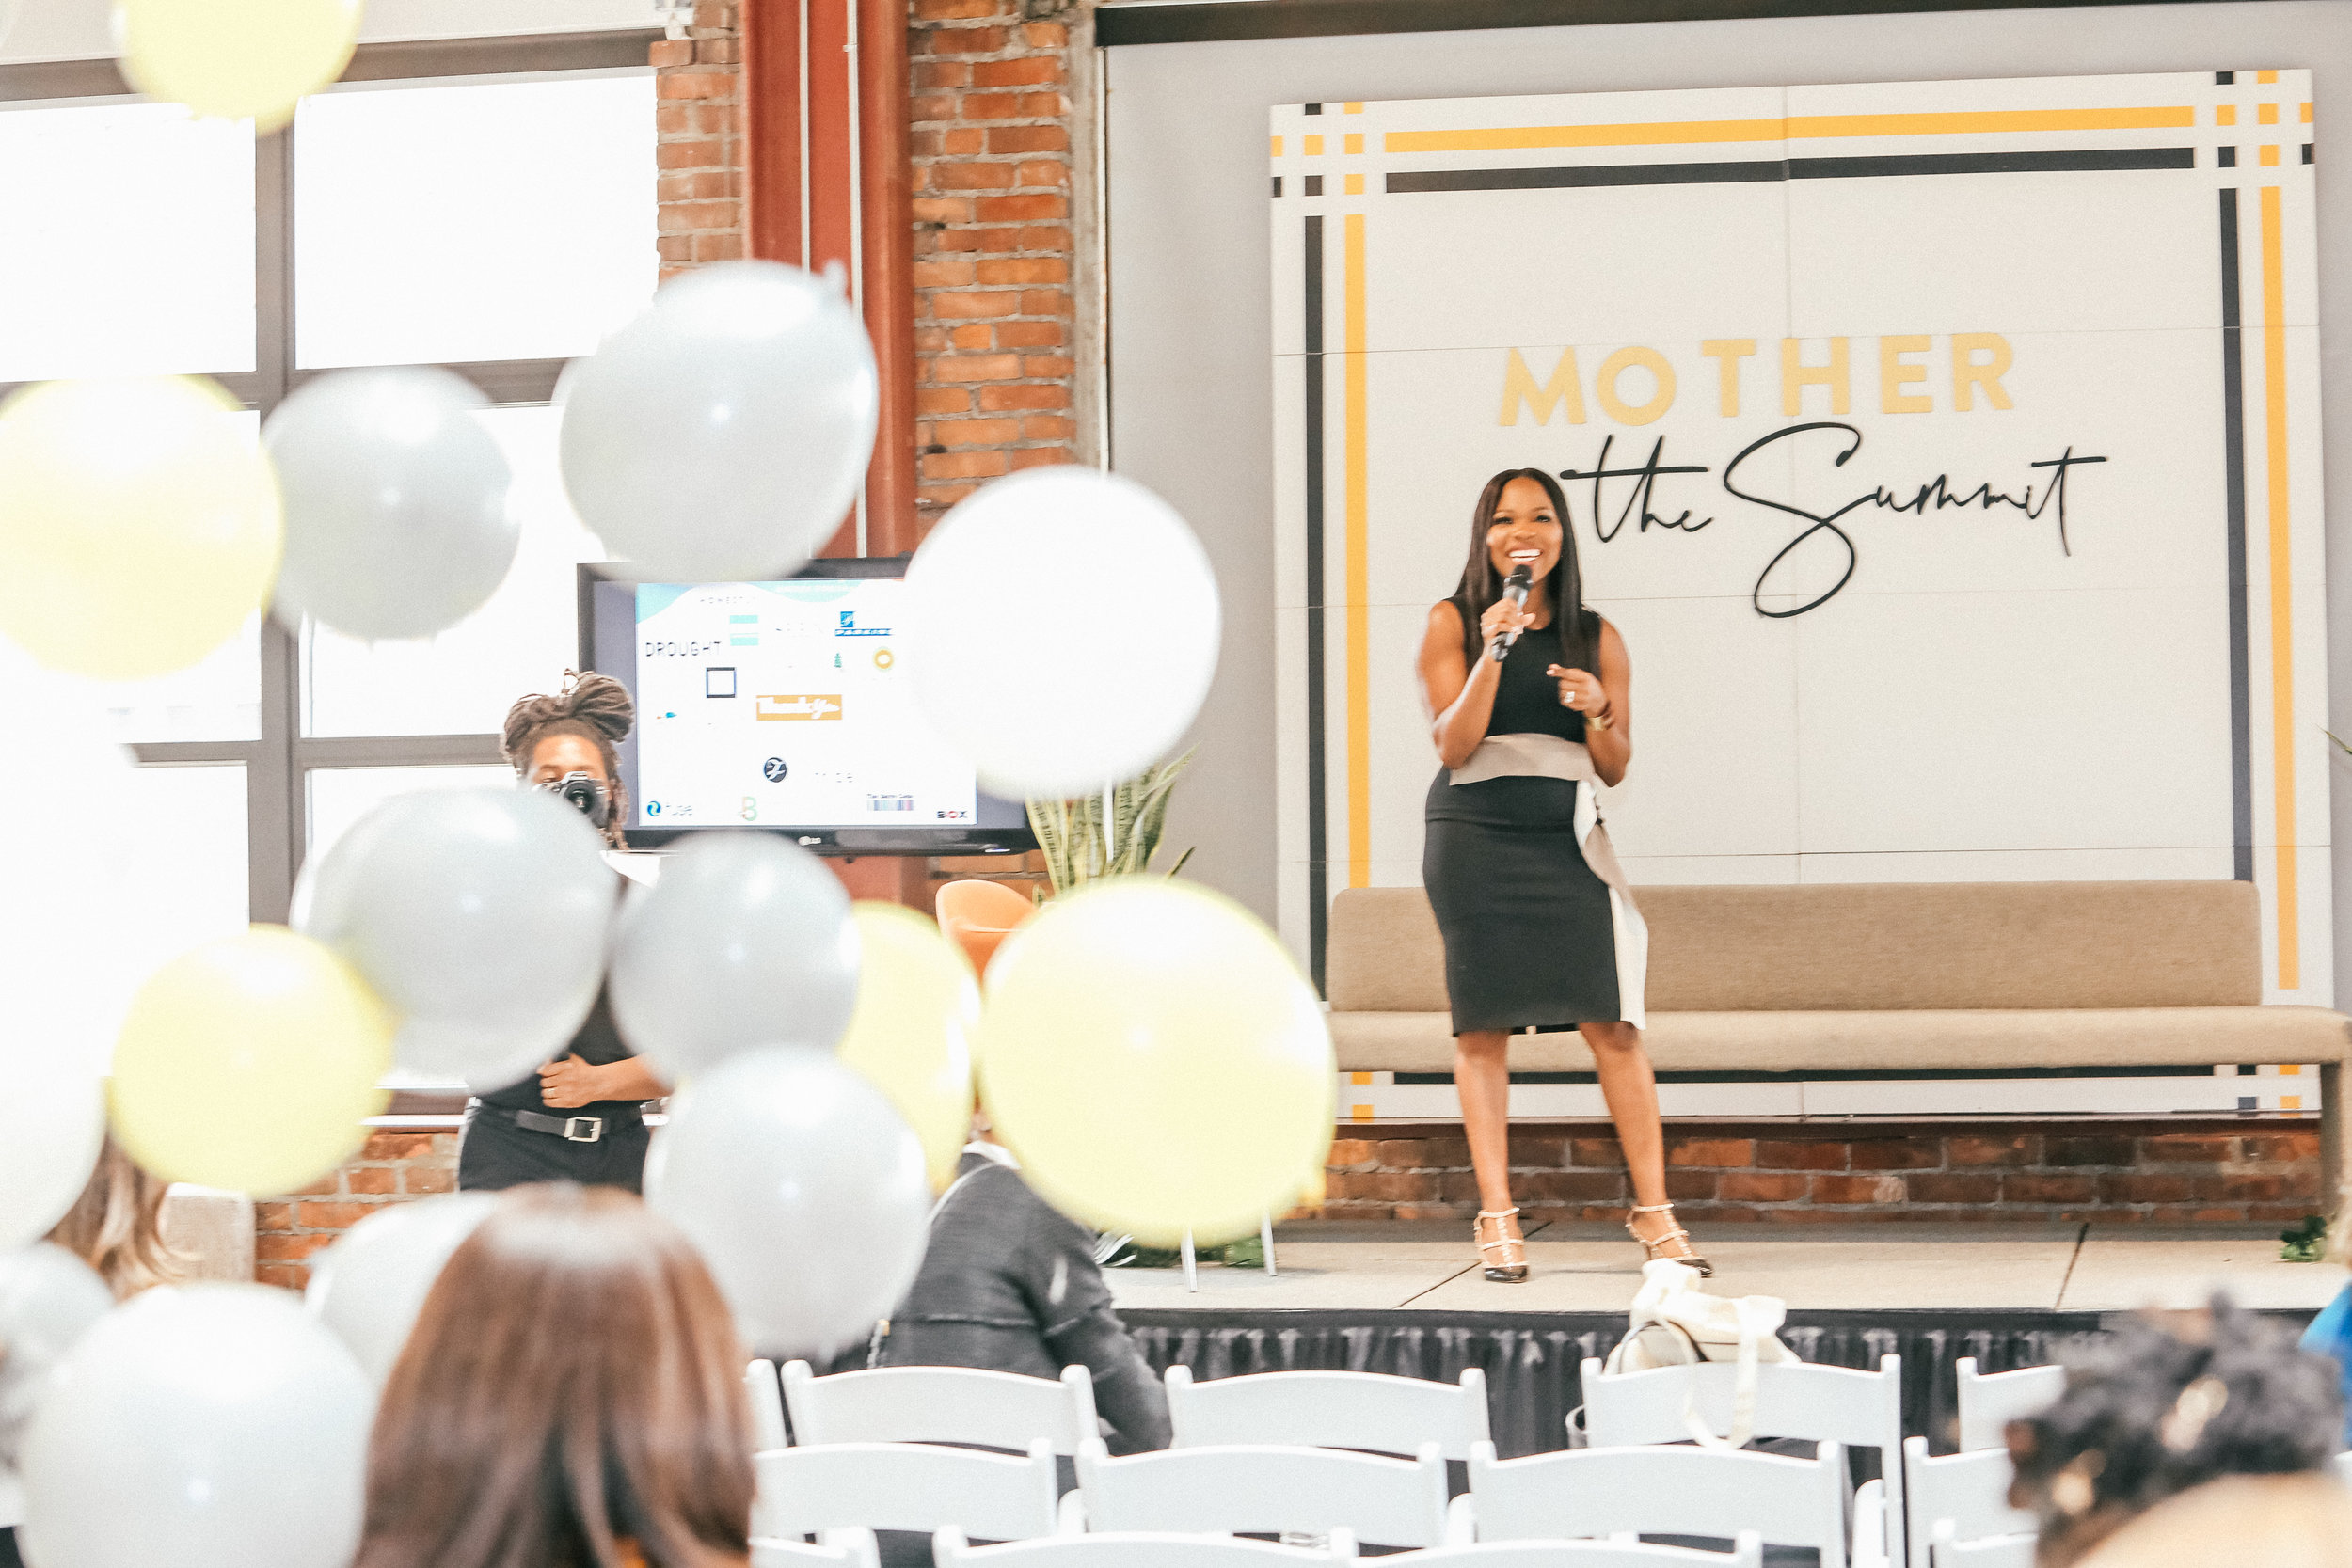 A complete ecosystem - That enables women to live their best life in motherhood